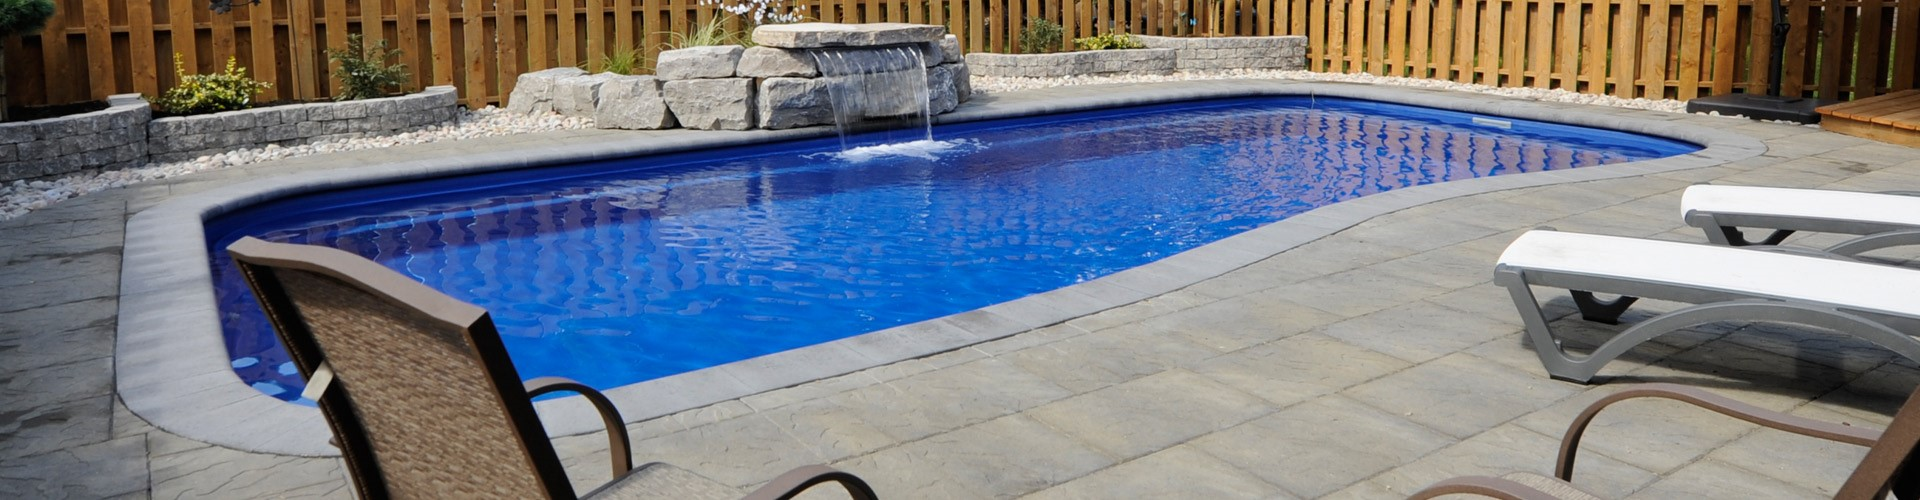 inground swimming pool companies fiberglass swimming pools